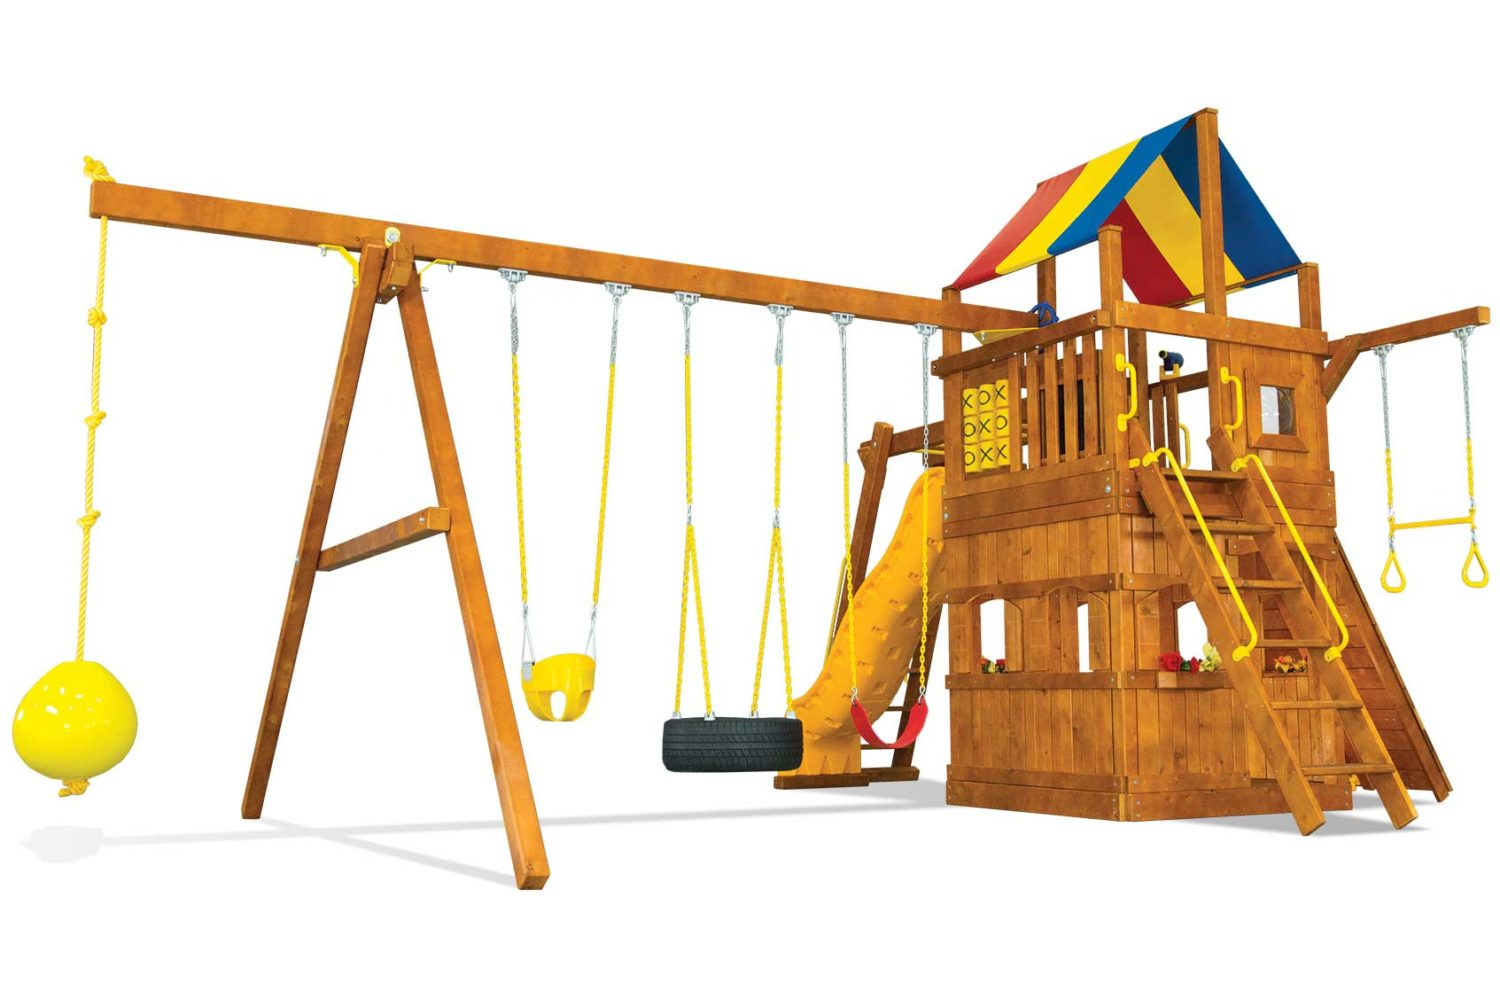 Carnival Turbo Clubhouse Pkg III with Playhouse and More Wooden Swing Set